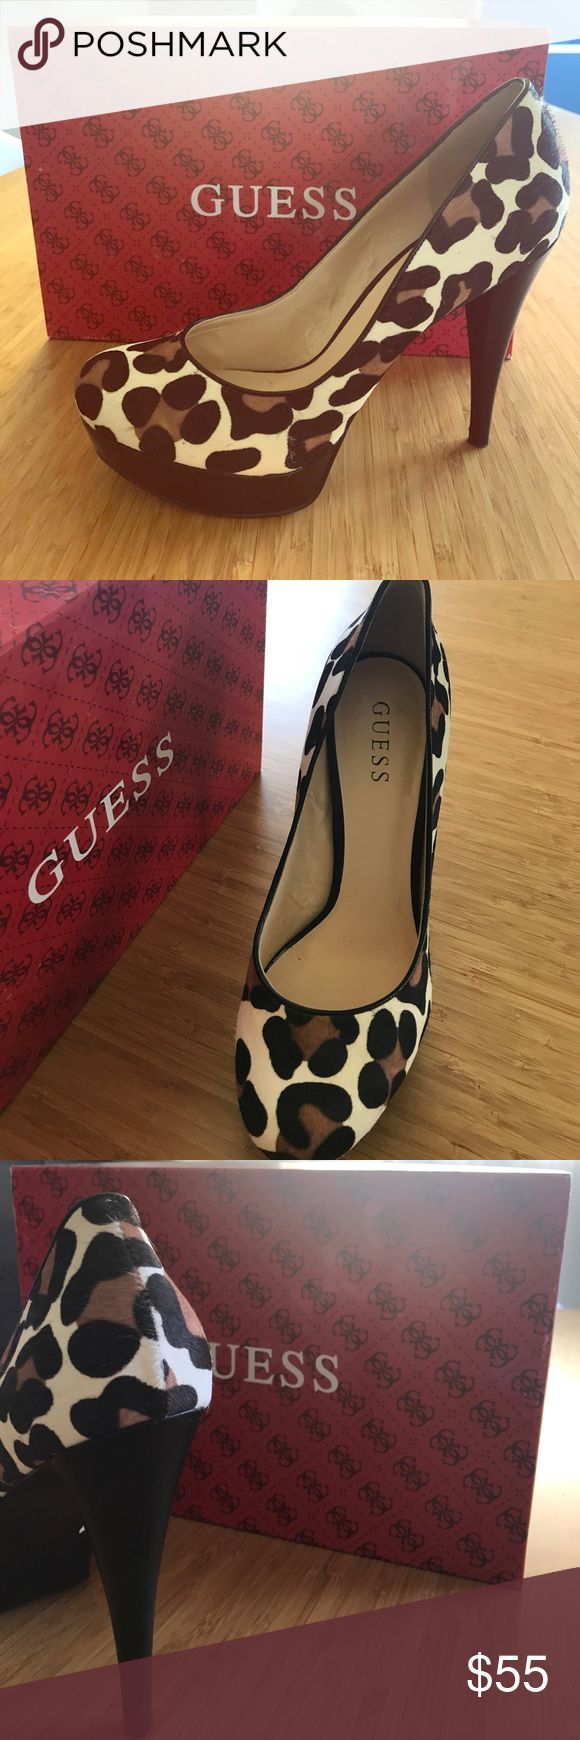 Animal print high heels Brand new Guess heels, never worn! Sleek and classy design, perfect for any occasion and guaranteed to turn heads. Guess Shoes Heels